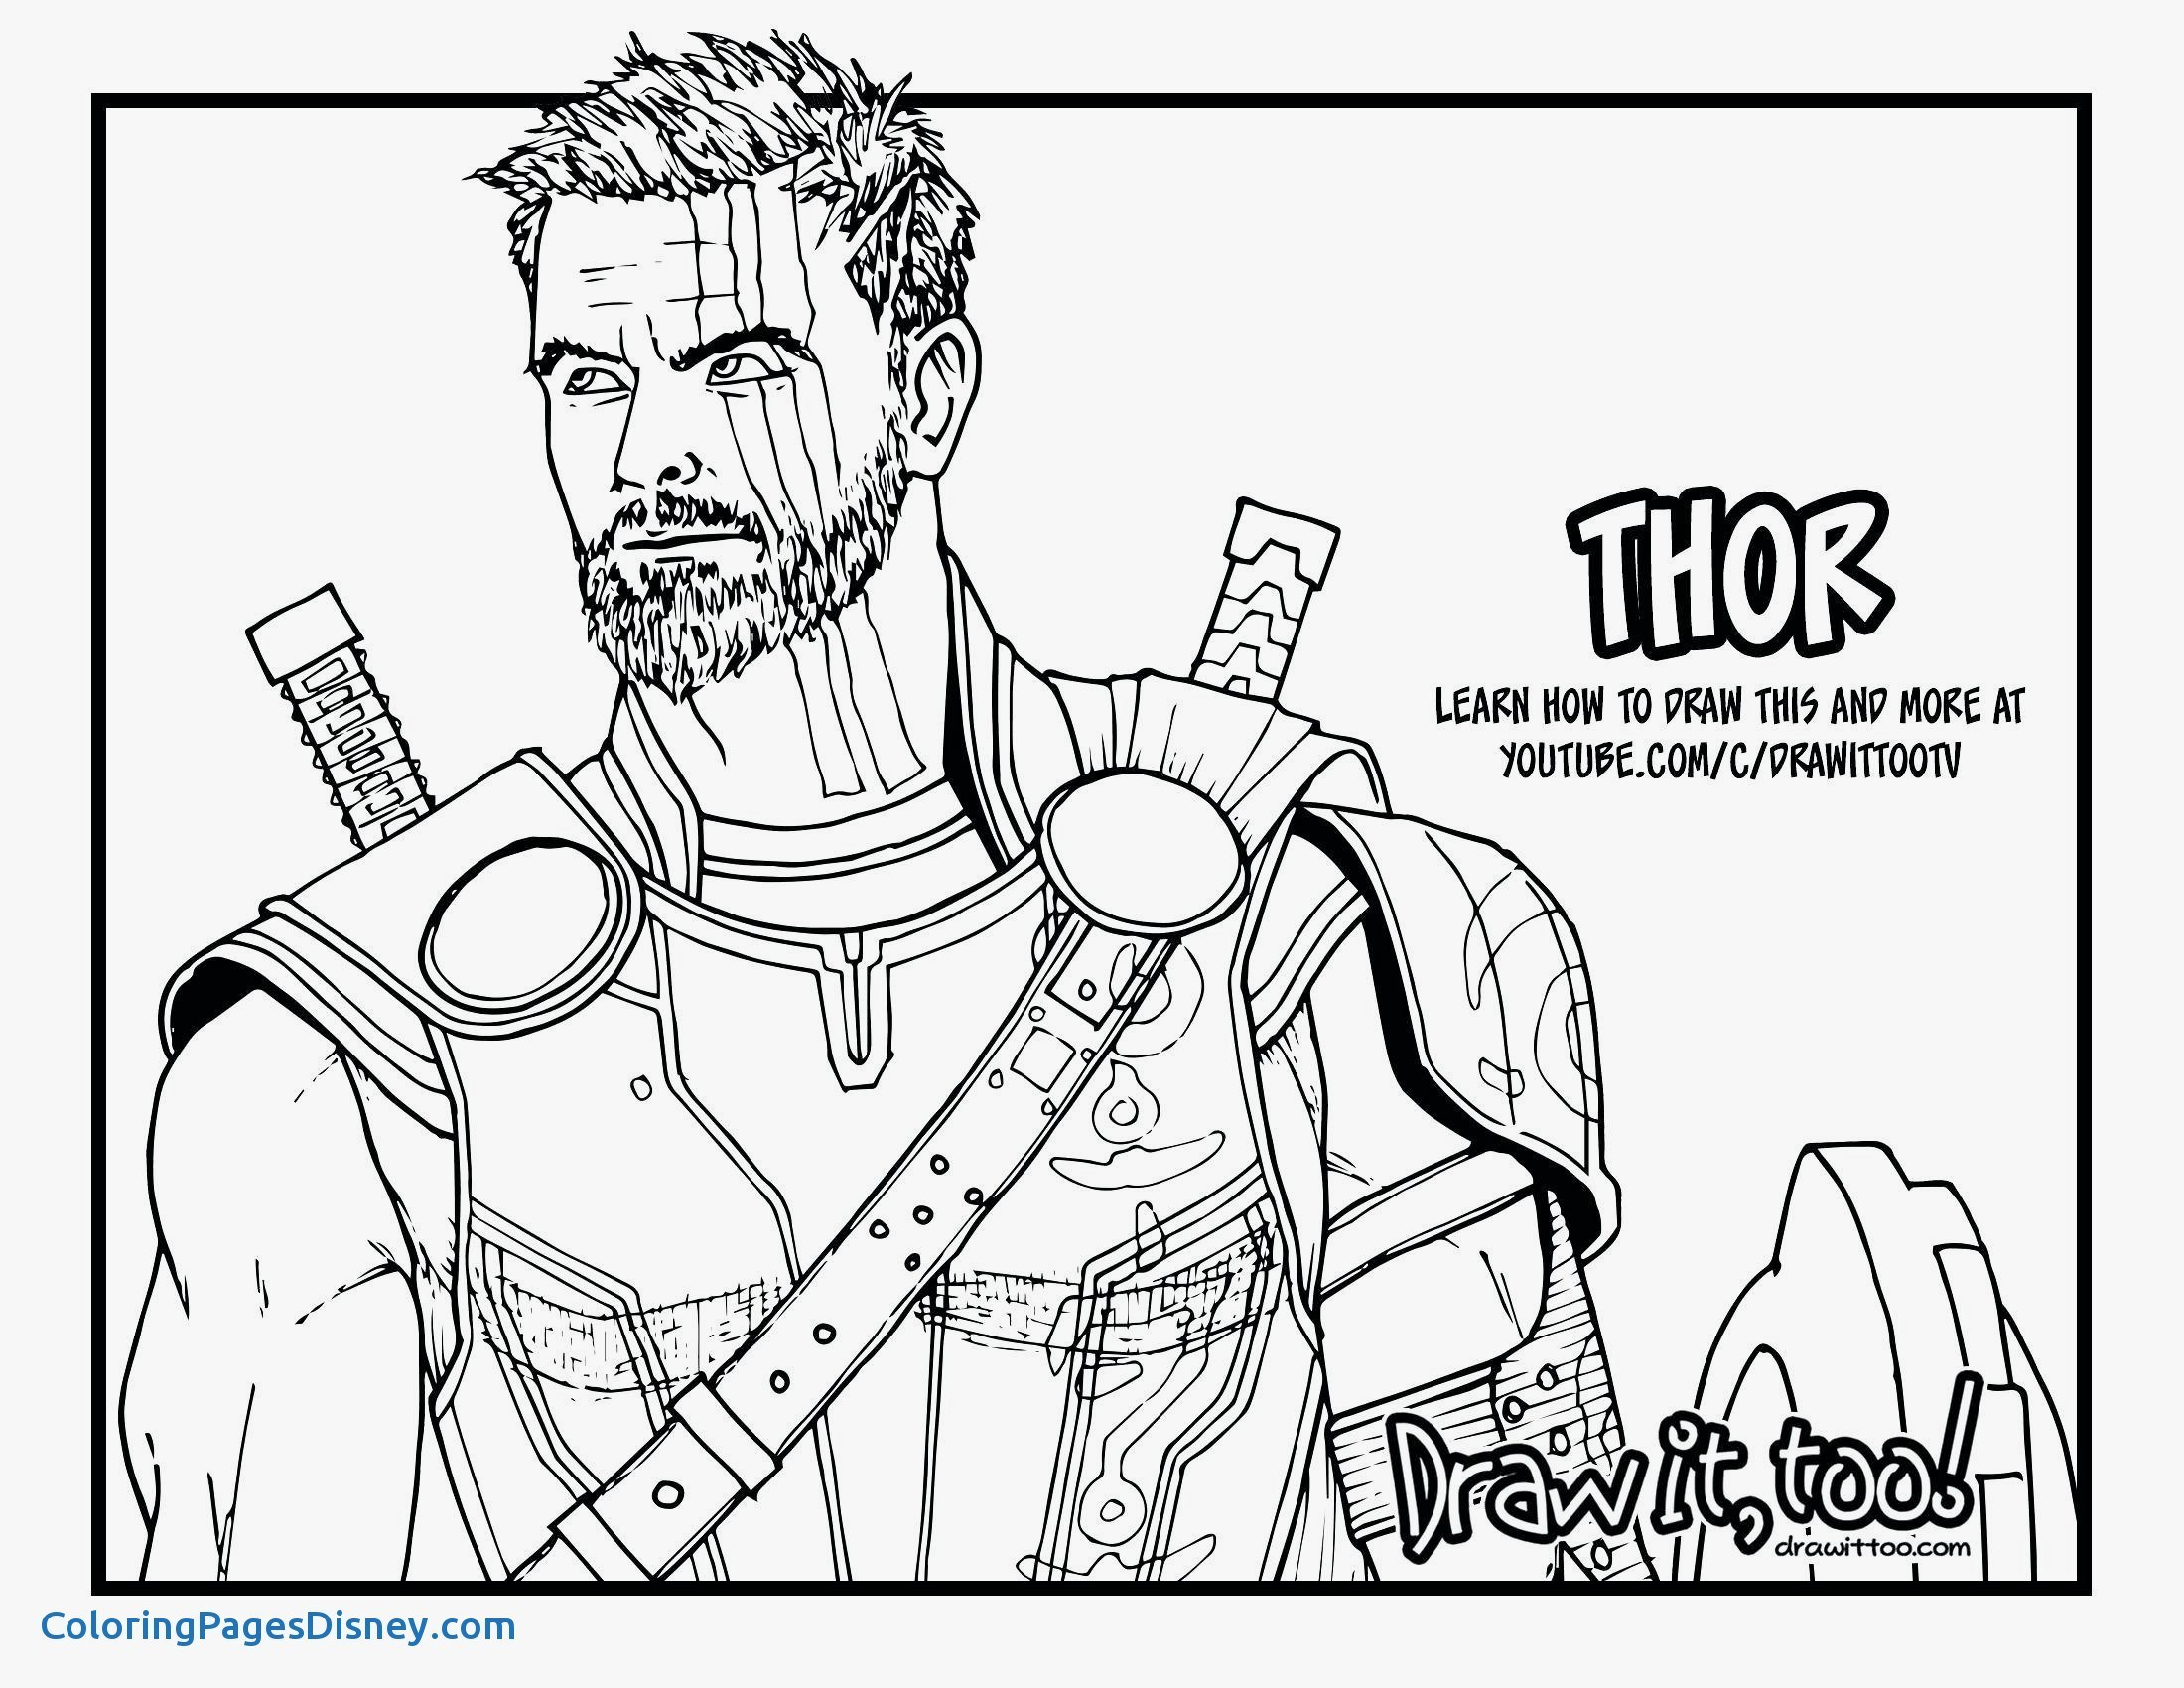 avenger coloring pages Download-Marvel Coloring Pages Avengers Thor Coloring Pages Free Coloring Pages Download 20-t